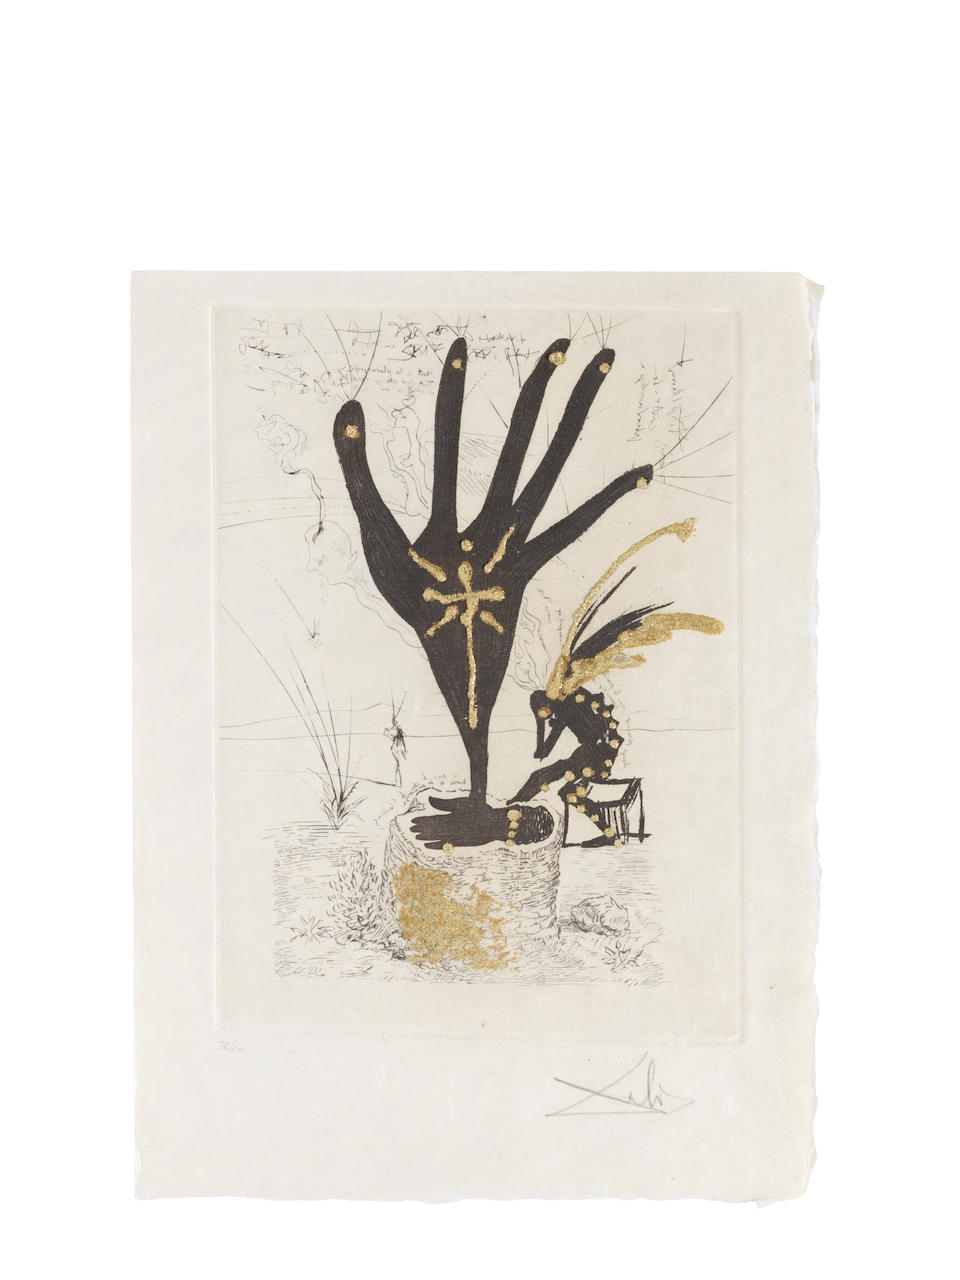 Salvador Dali (Spanish, 1904-1989) Les Amours Jaunes, Éditions Pierre Belfond, Paris, 1974 The complete set of ten drypoint etchings with gilding, hors-texte, on Japon nacré paper, numbered IV on the justification/title page, each drypoint signed and numbered IV/CC in pencil, from the second edition (there were also 300 sets in Arabic numbers on Arches), the full sheets, loose (as issued), without the text, in very good condition, together with a certificate from the publisher, contained in a red linen-covered portfolio with gilt title Plate 300 x 212mm., Sheet 380 x 280mm.  (10)Folio 395 x 300 x 24mm.